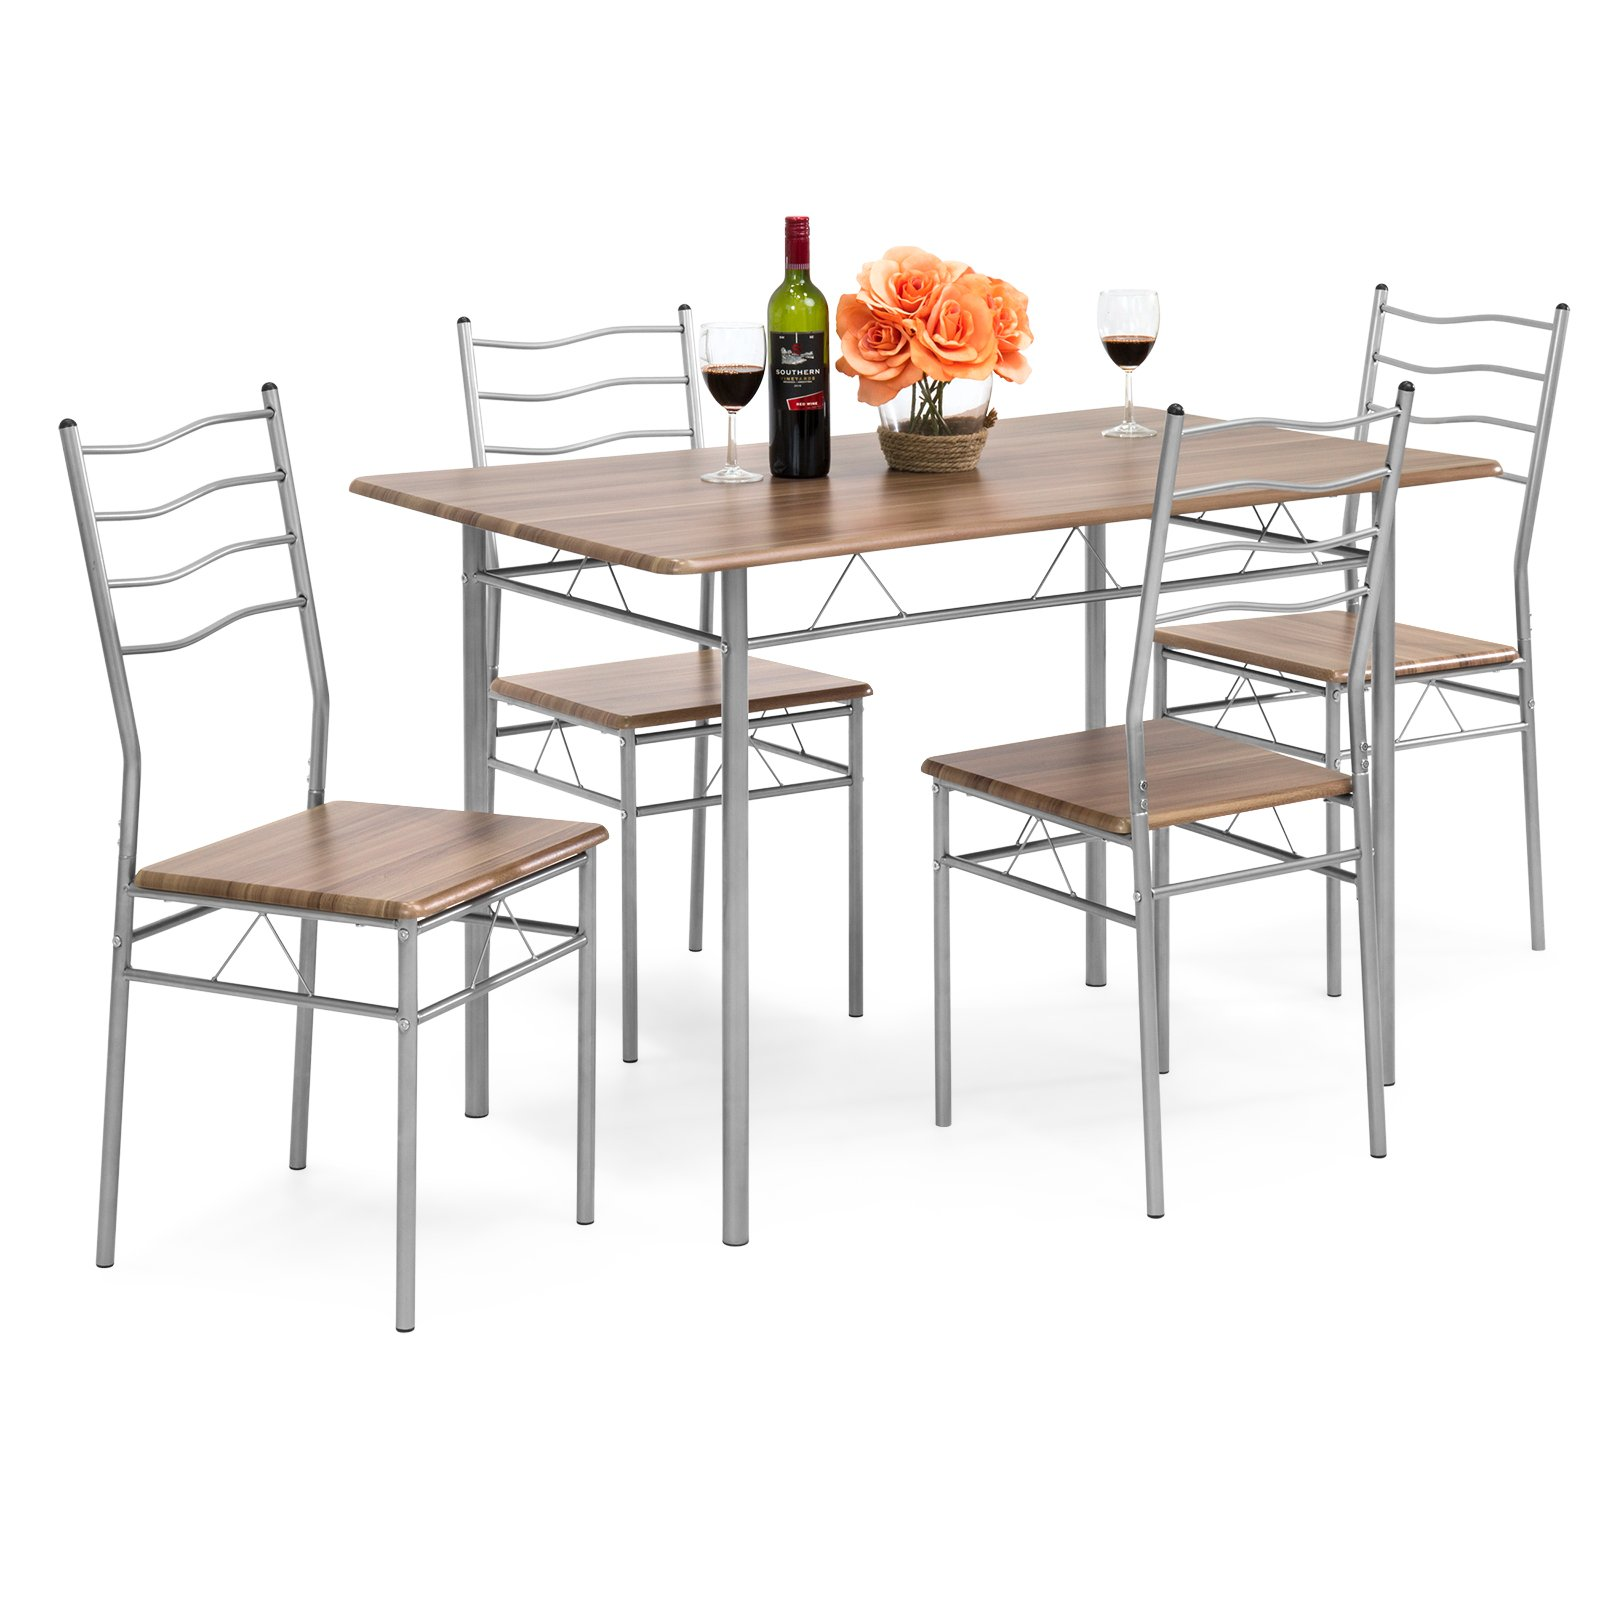 Best Choice Products 5-Piece 4-Foot Modern Wooden Kitchen Table Dining Set w/Metal Legs, 4 Chairs, Brown/Silver by Best Choice Products (Image #7)